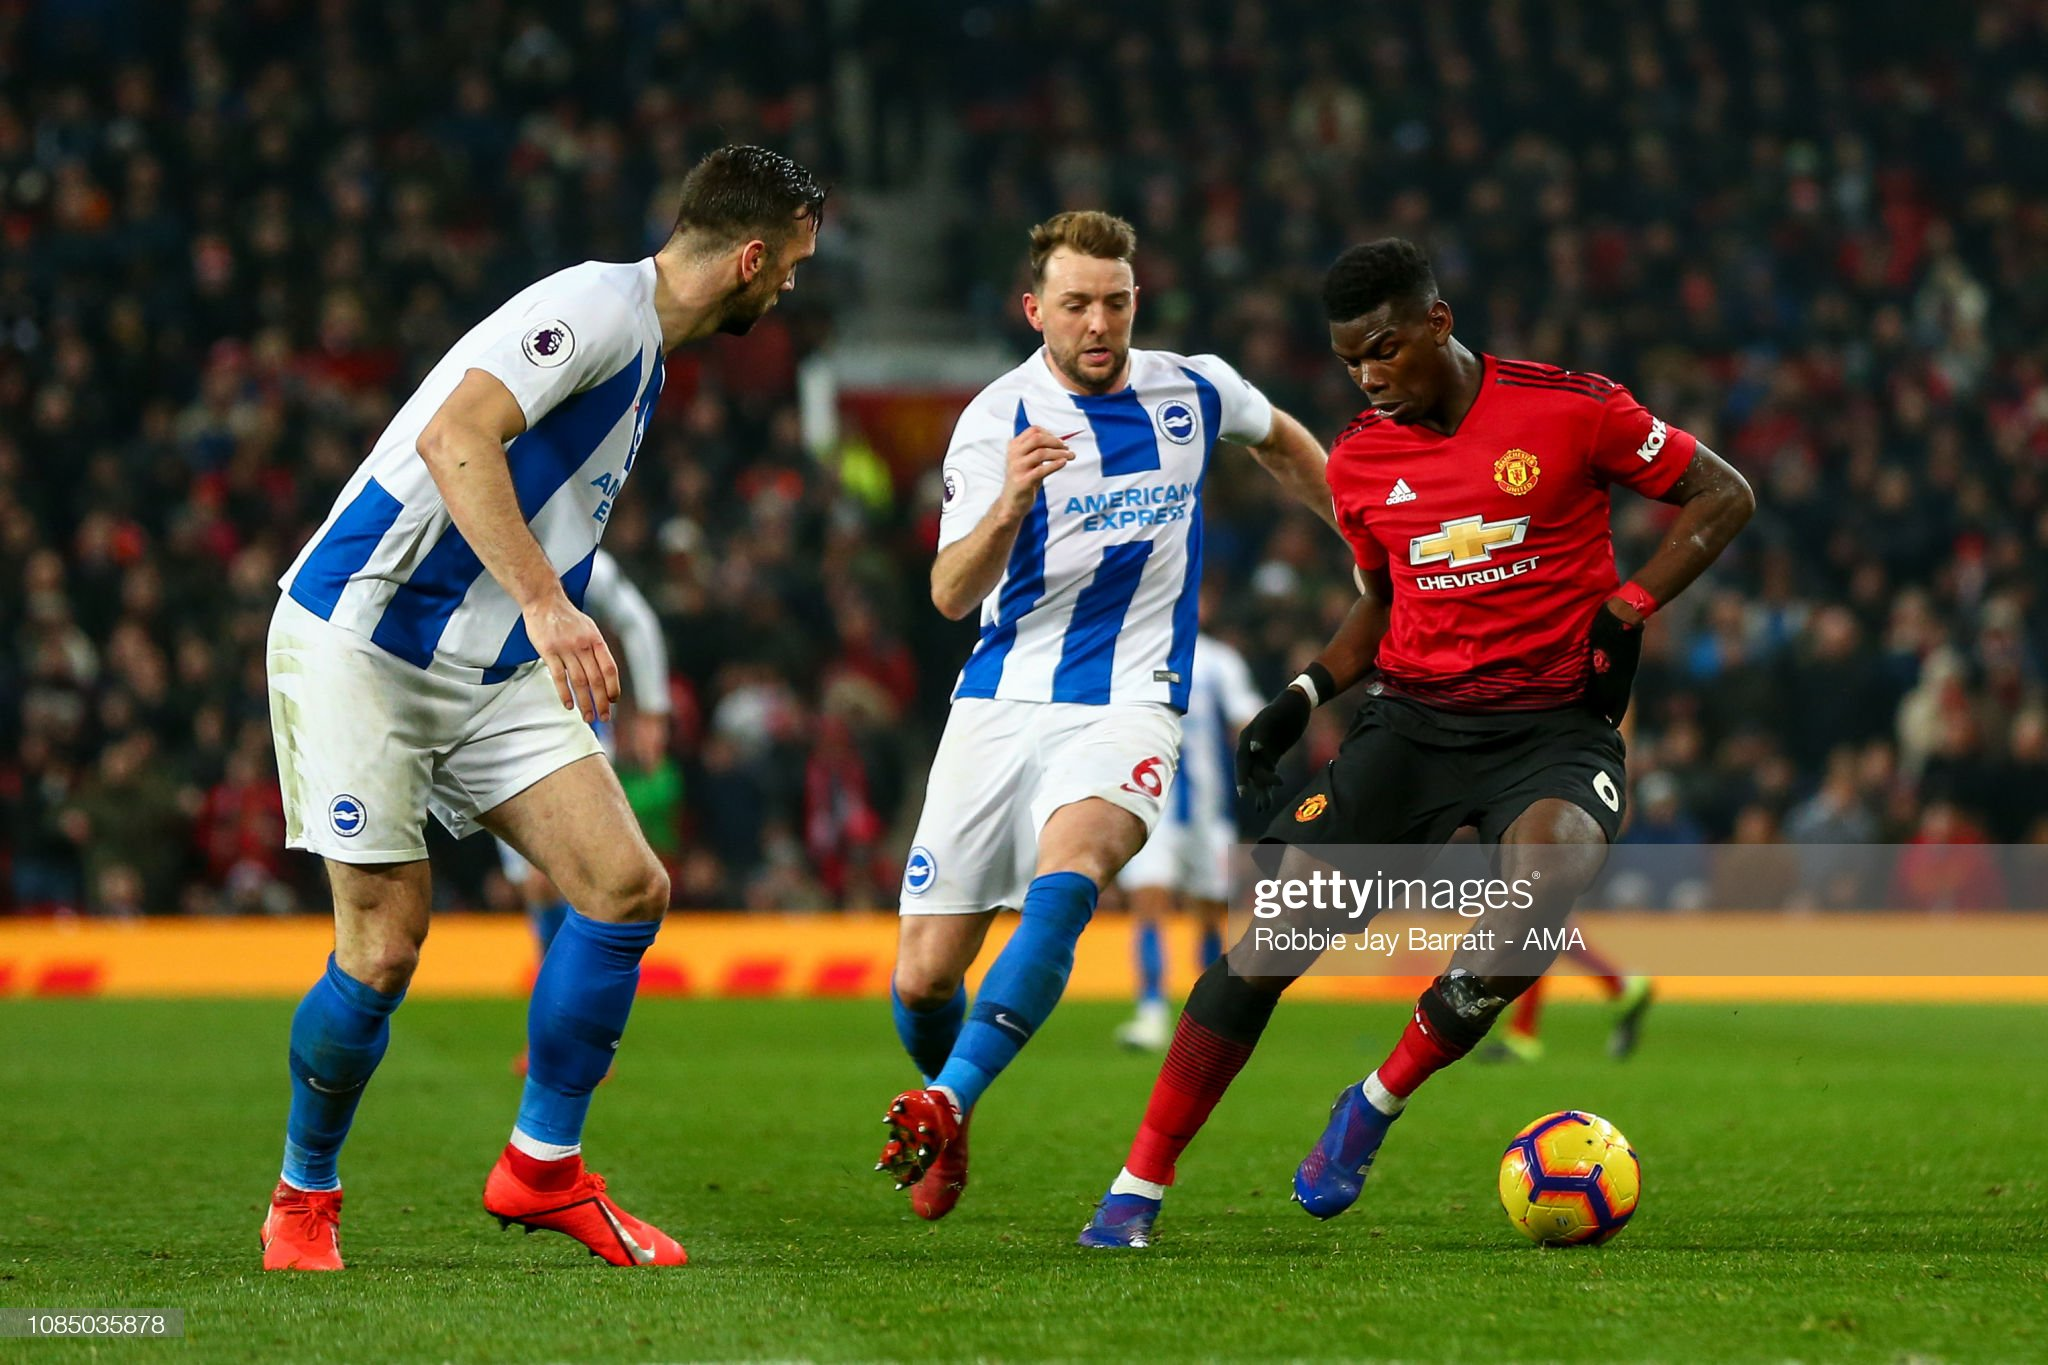 Manchester United v Brighton preview, prediction and odds